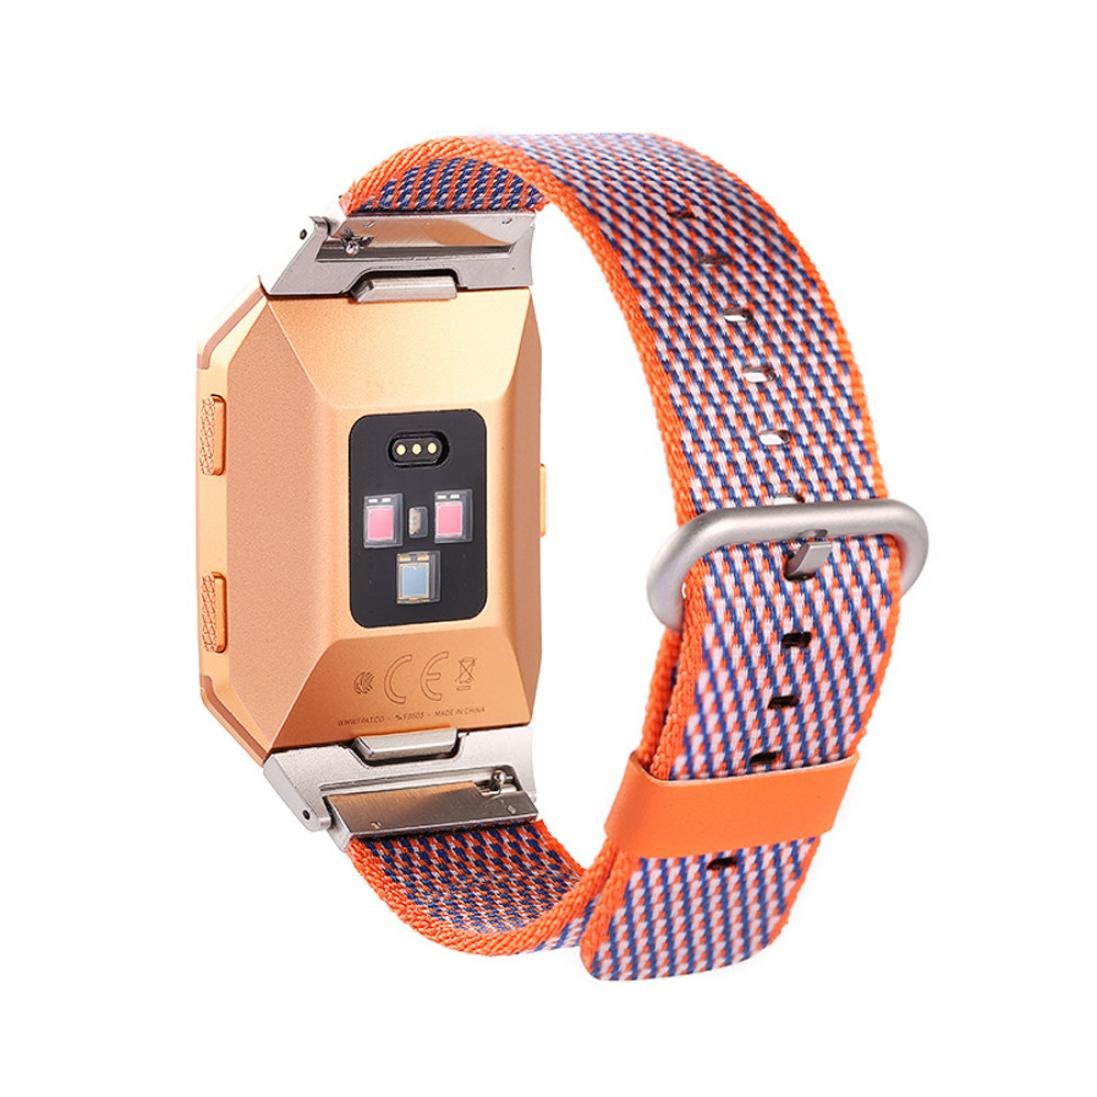 For Fitbit Ionic Bands, Gotd Woven Nylon Sport Straps Accessory Replacement for Fitbit Ionic Smart Fitness Watch Women Men (Orange)